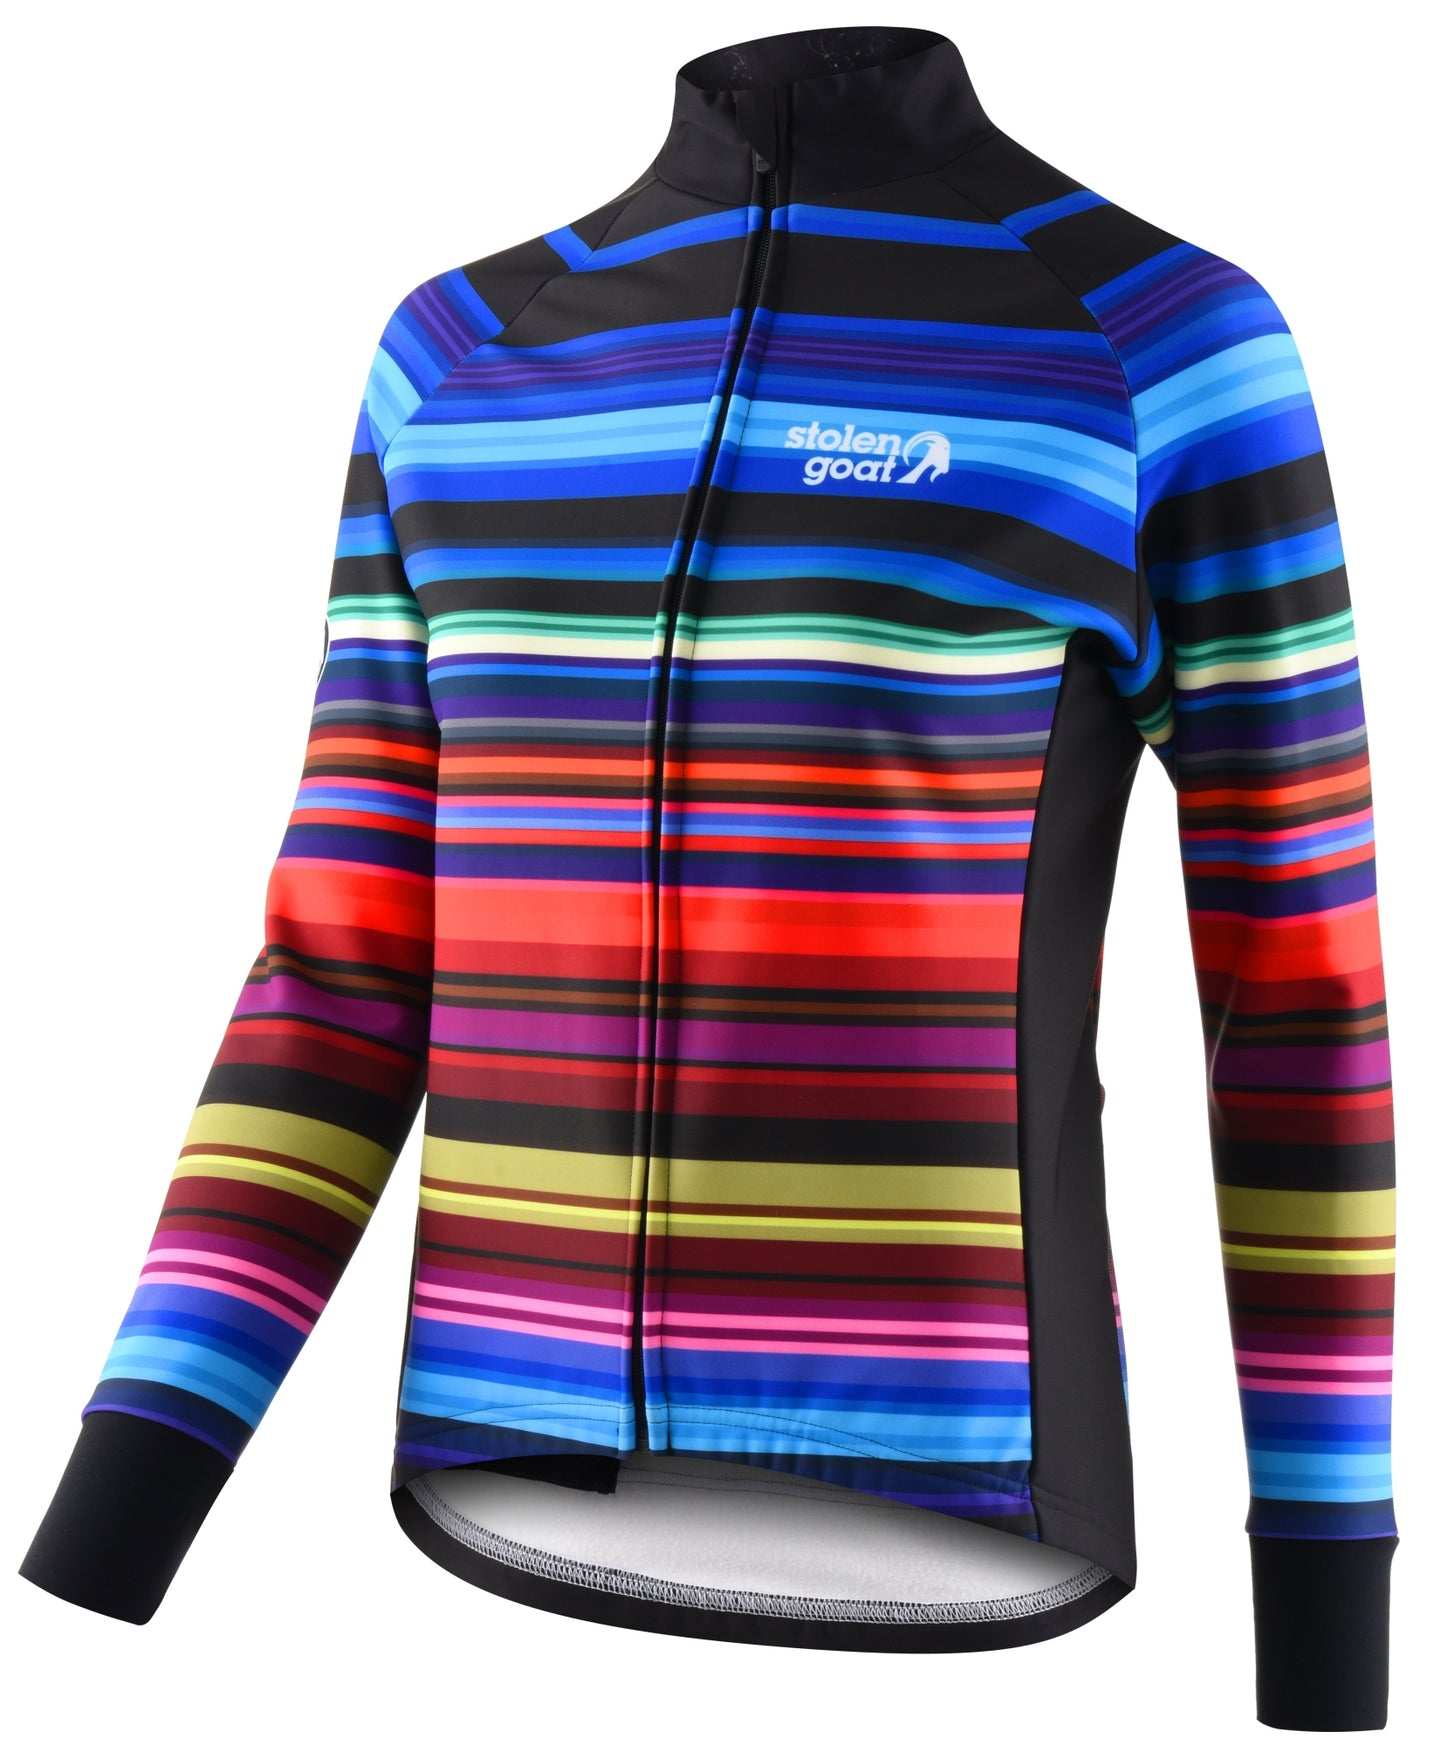 Stolen Goat Climb and Conquer Winter Cycling Jacket - Hypervelocity | VeloVixen